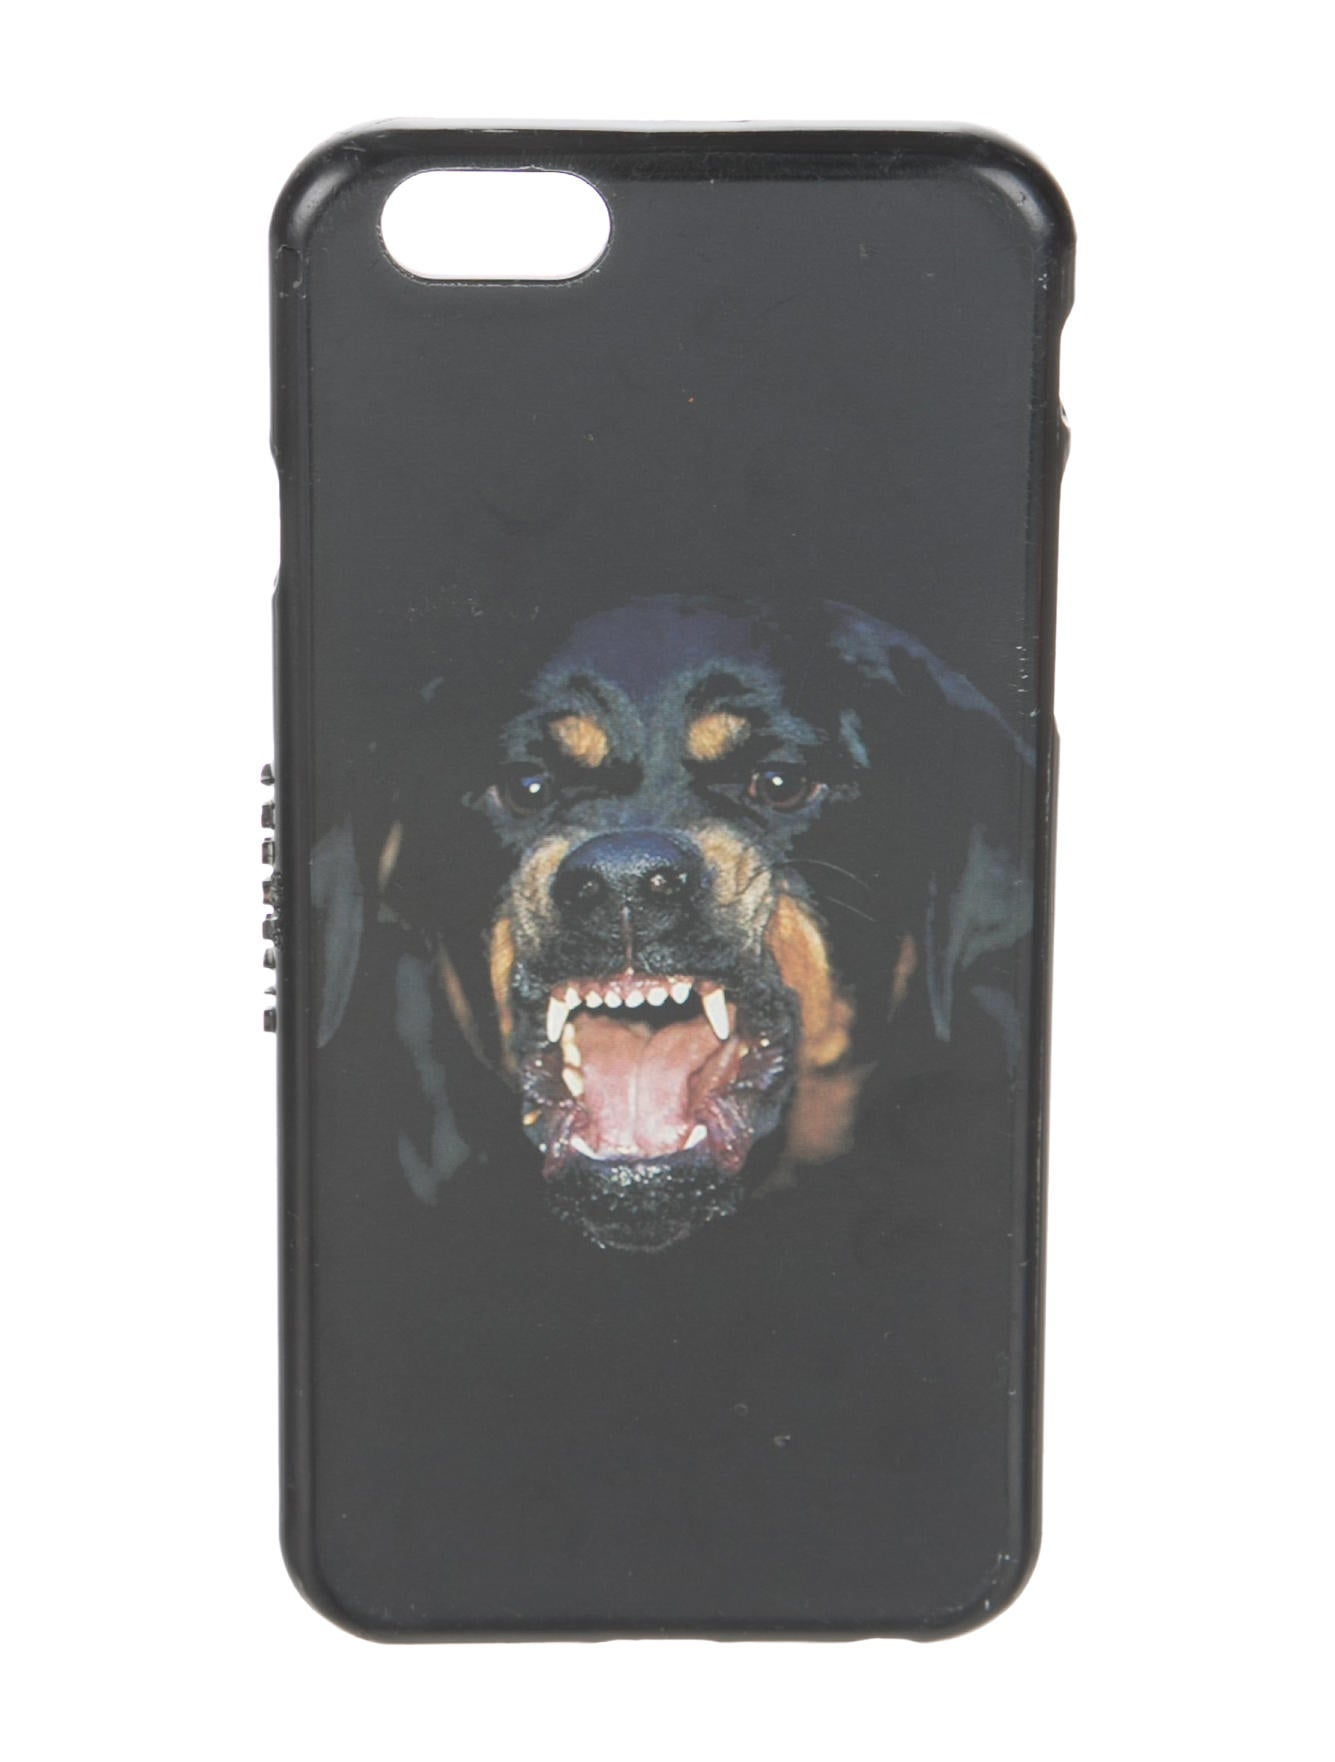 Givenchy Rottweiler Iphone 5 Case Accessories Giv48784 The